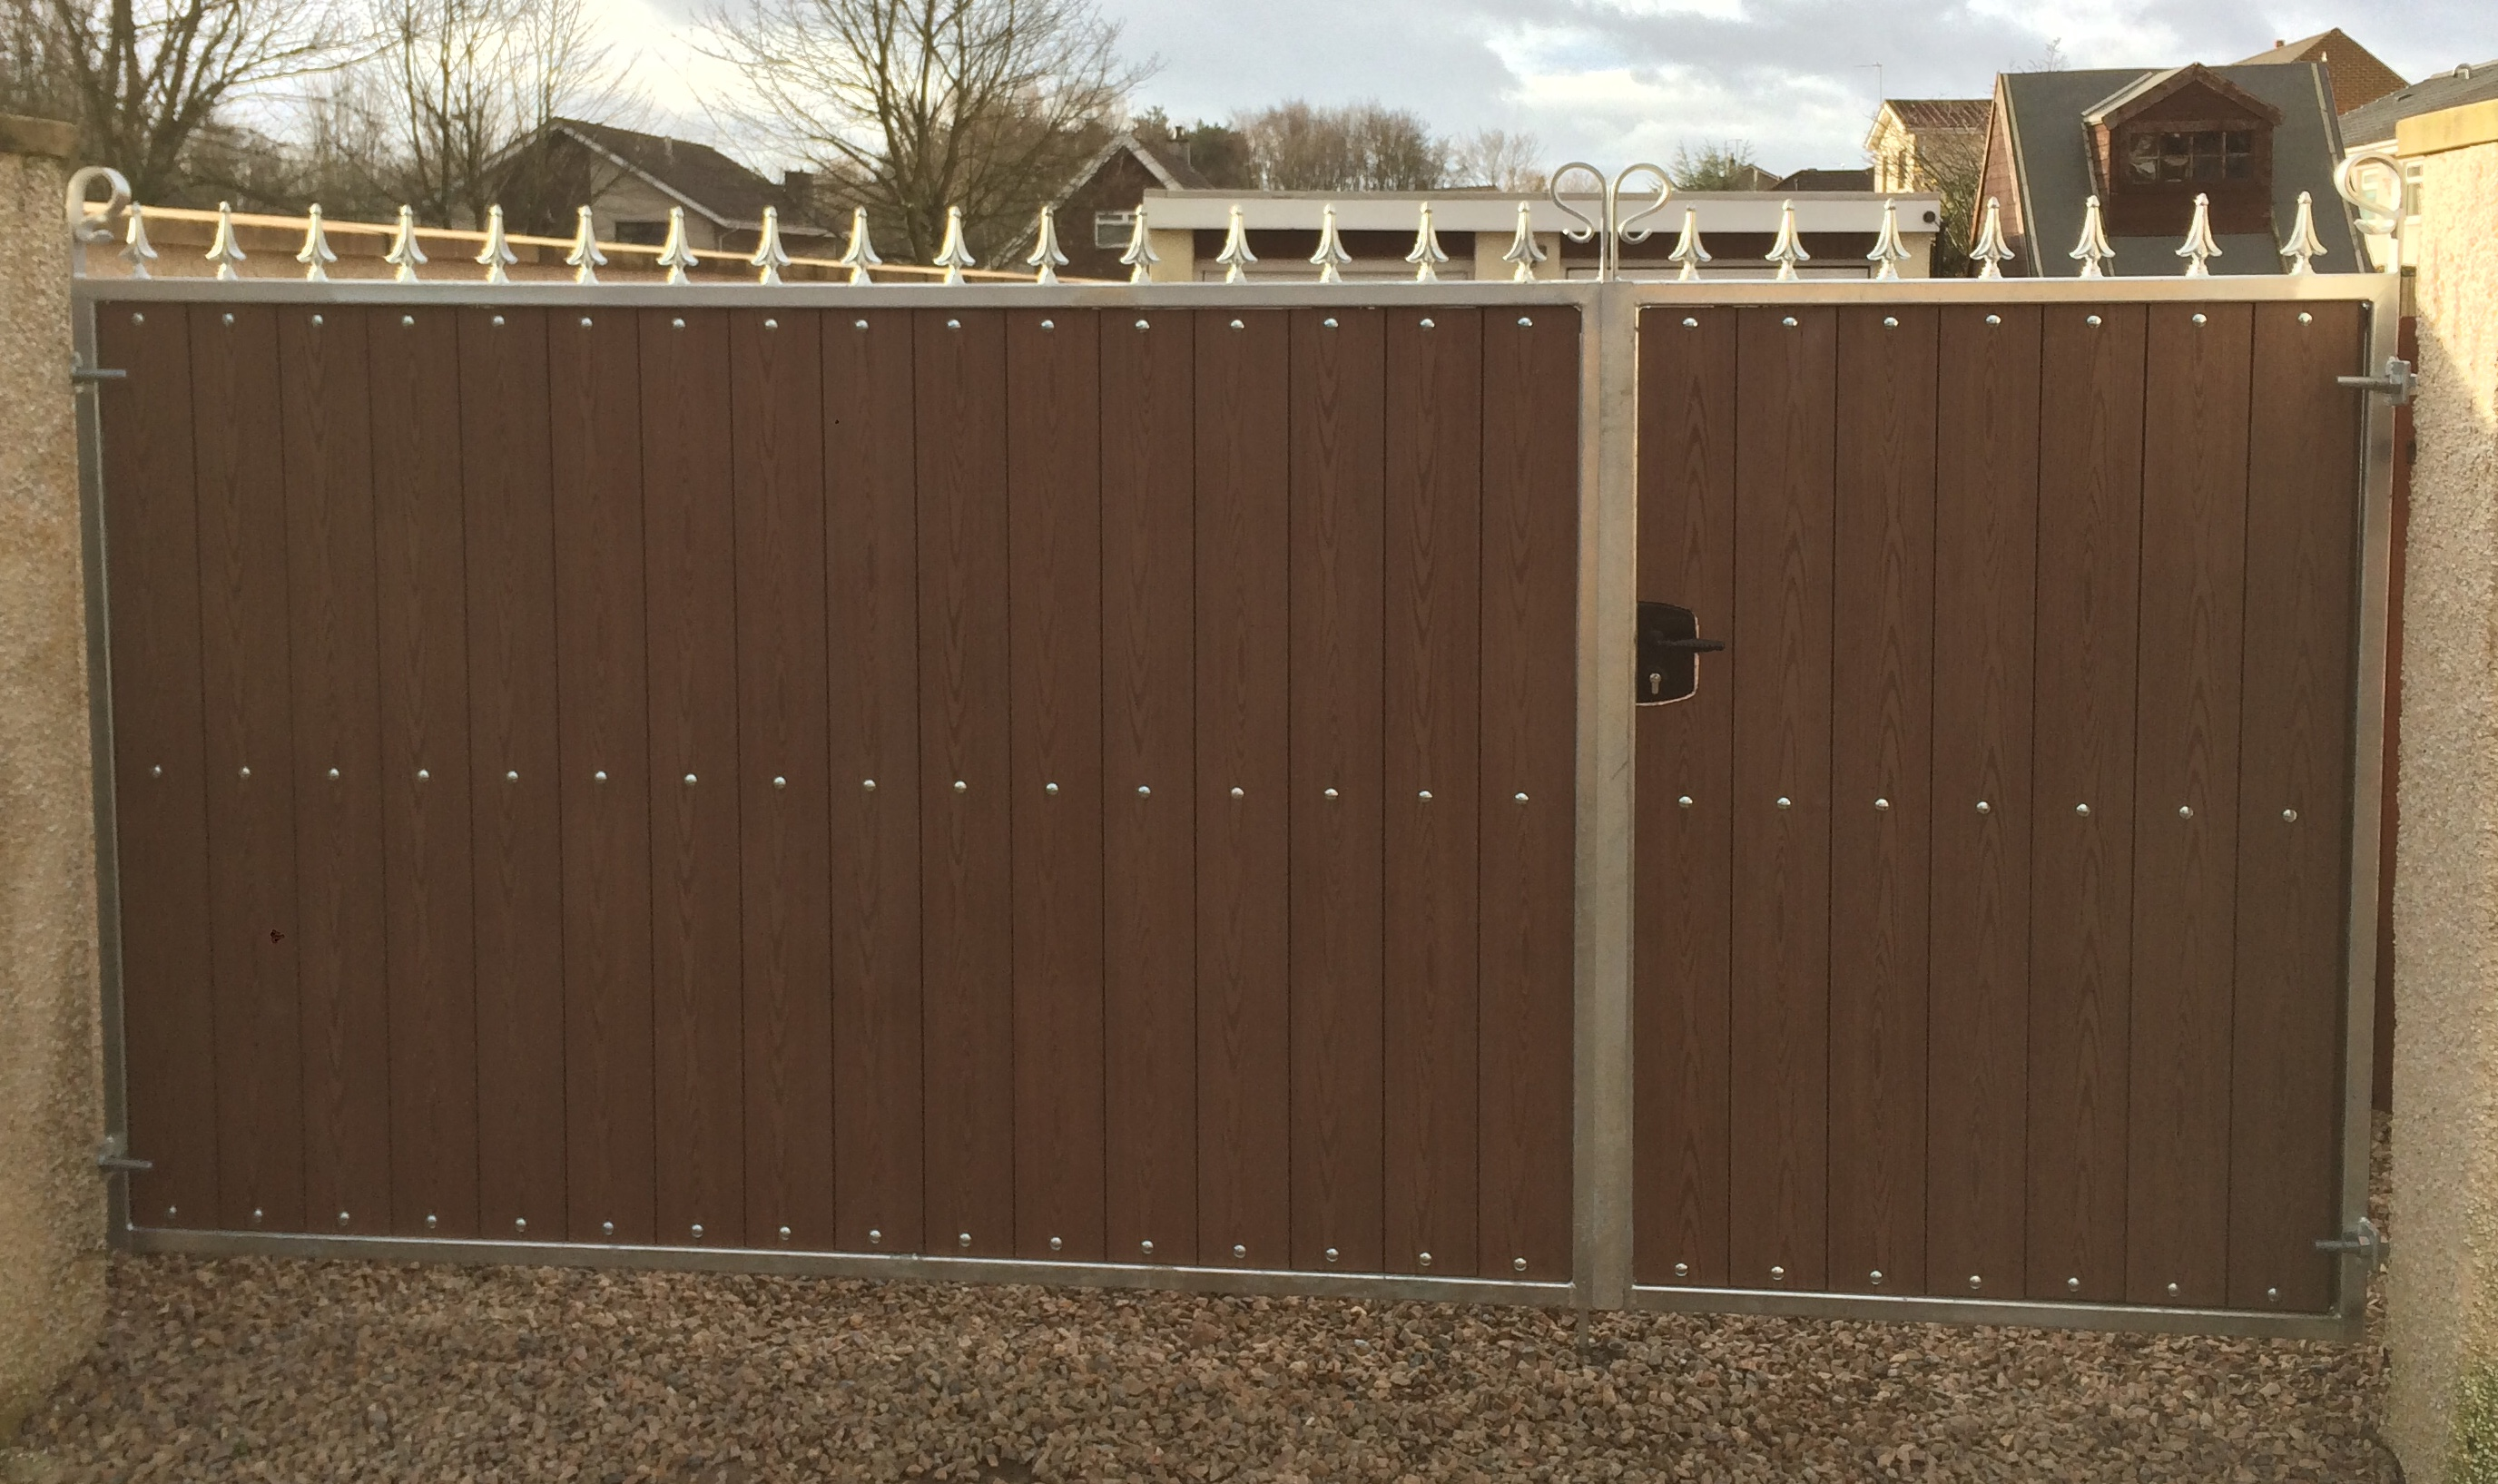 Galvanized frame driveway gates with composite boards and railheads